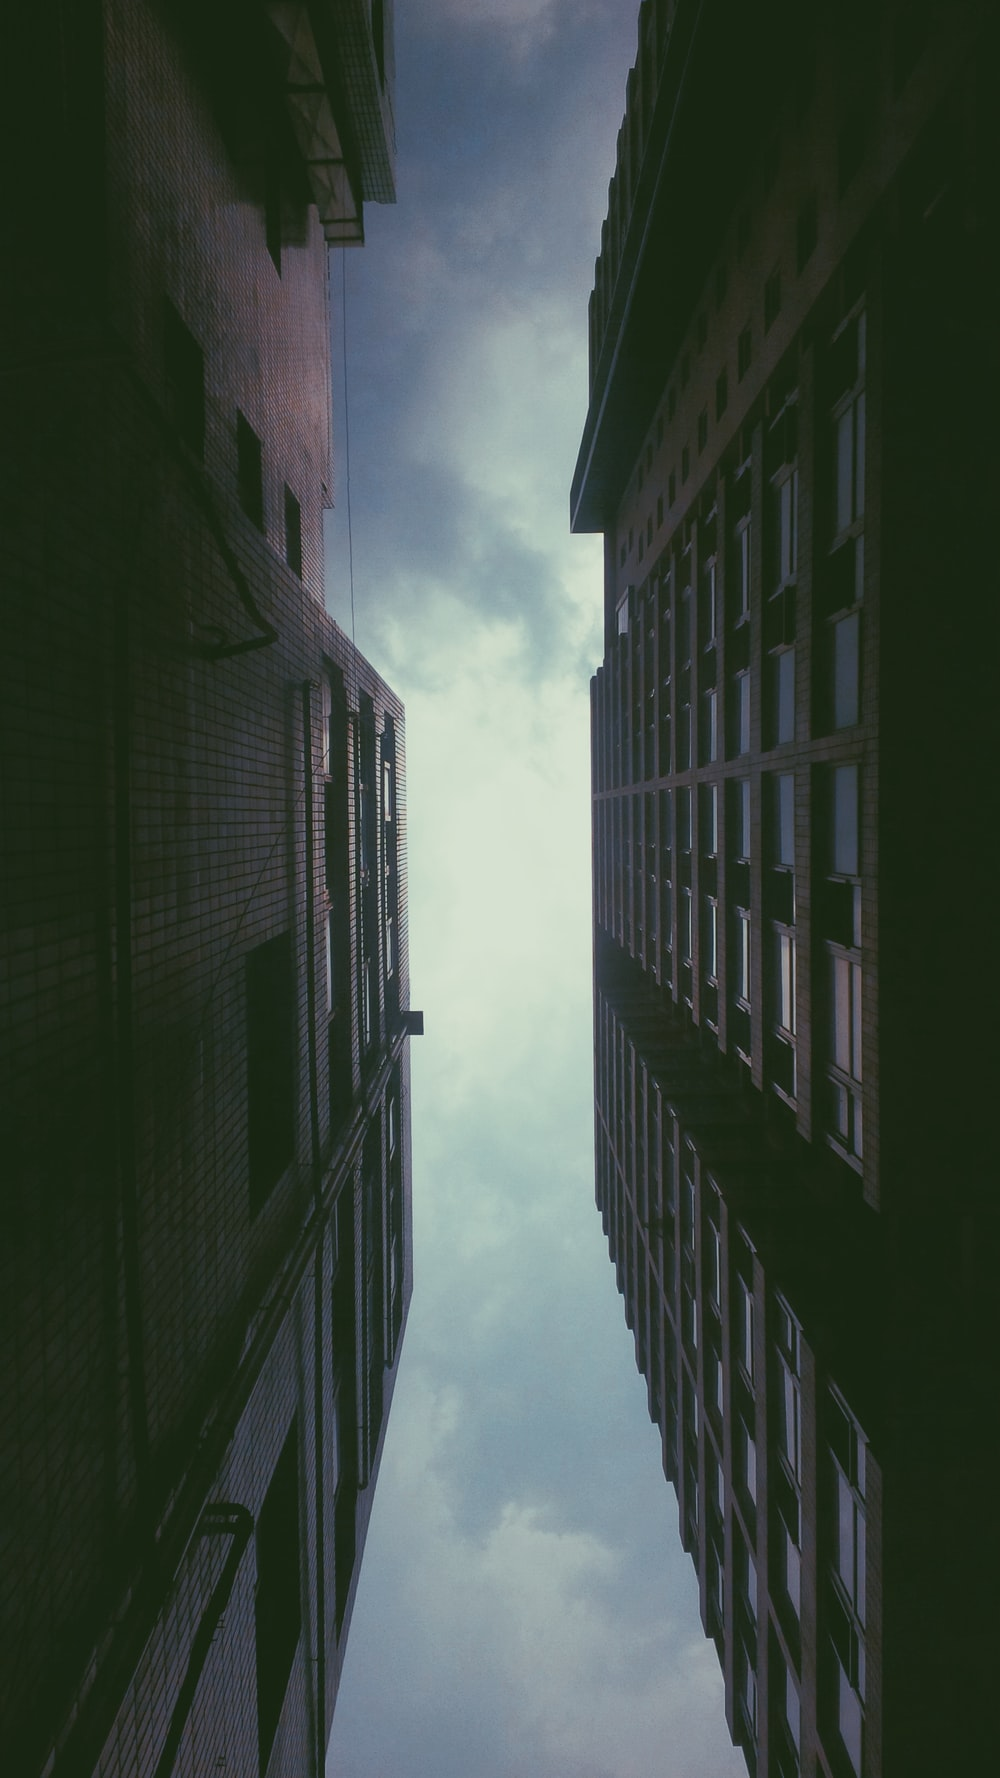 worm's eye view photo of high rise buildings